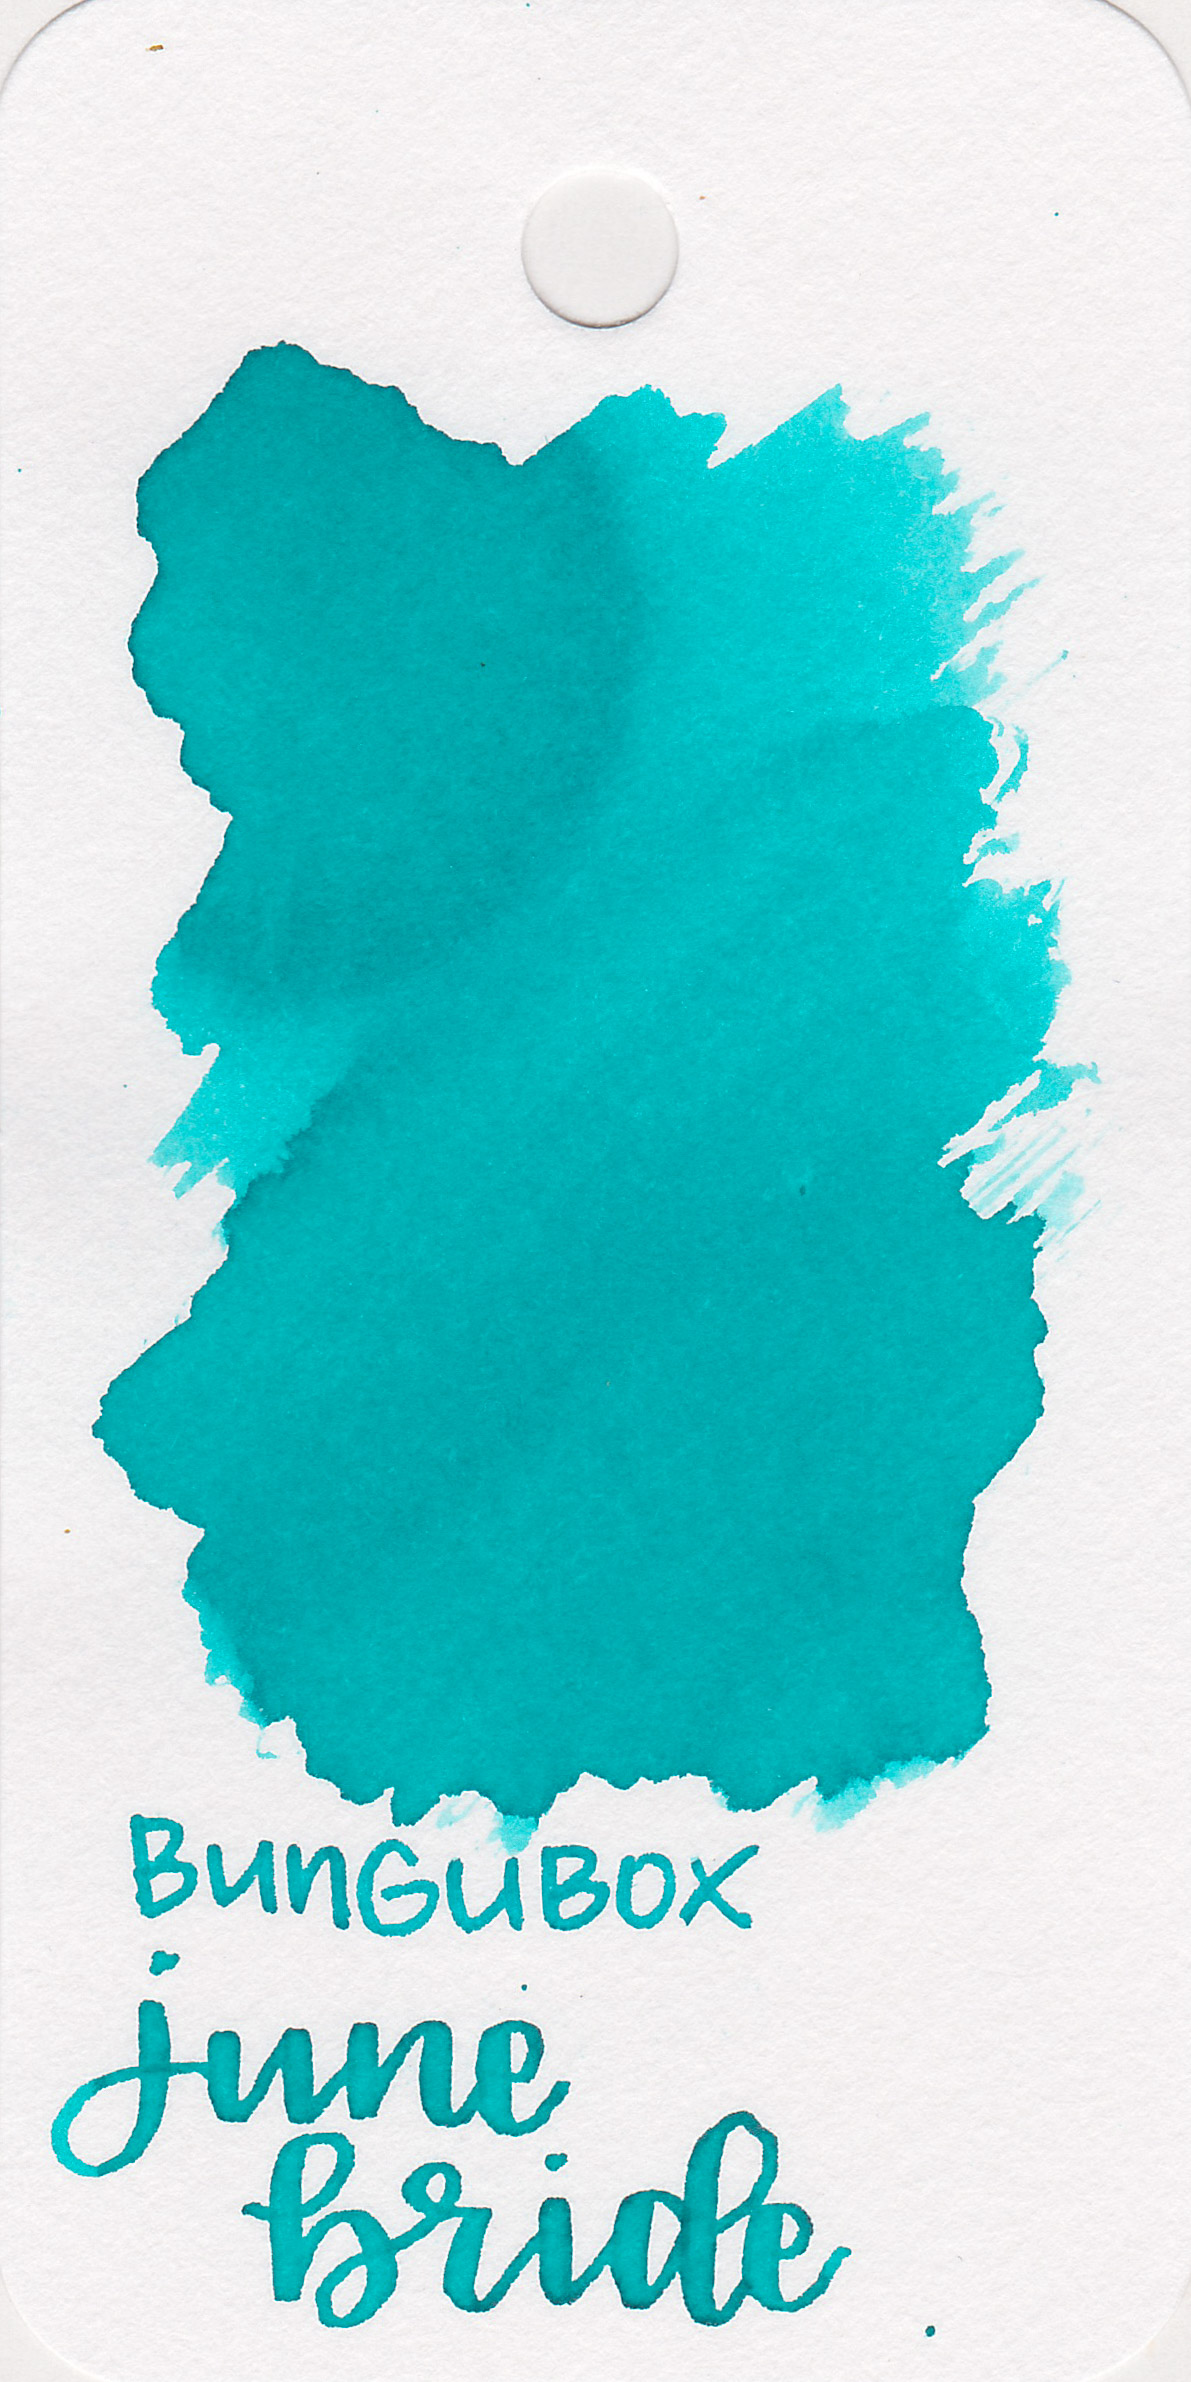 The color: - June Bride is a beautiful turquoise blue.